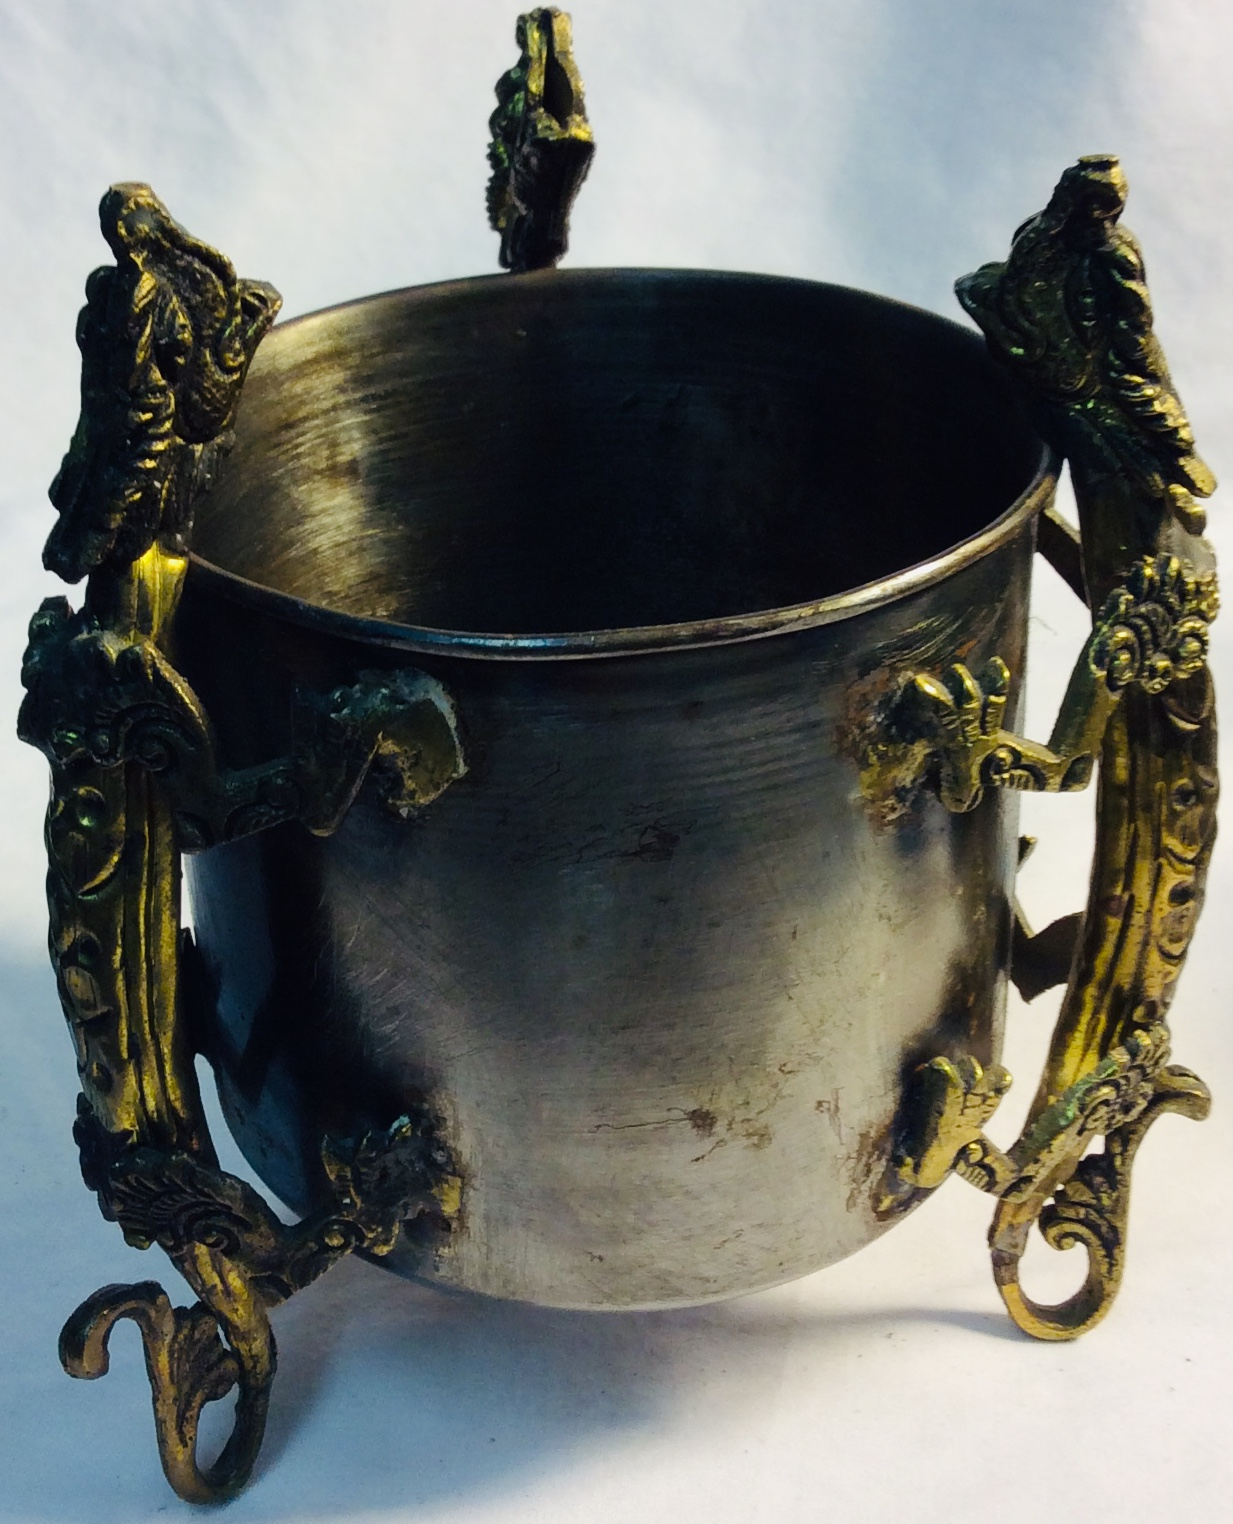 Medium silver cauldron with golden dragon details/handles